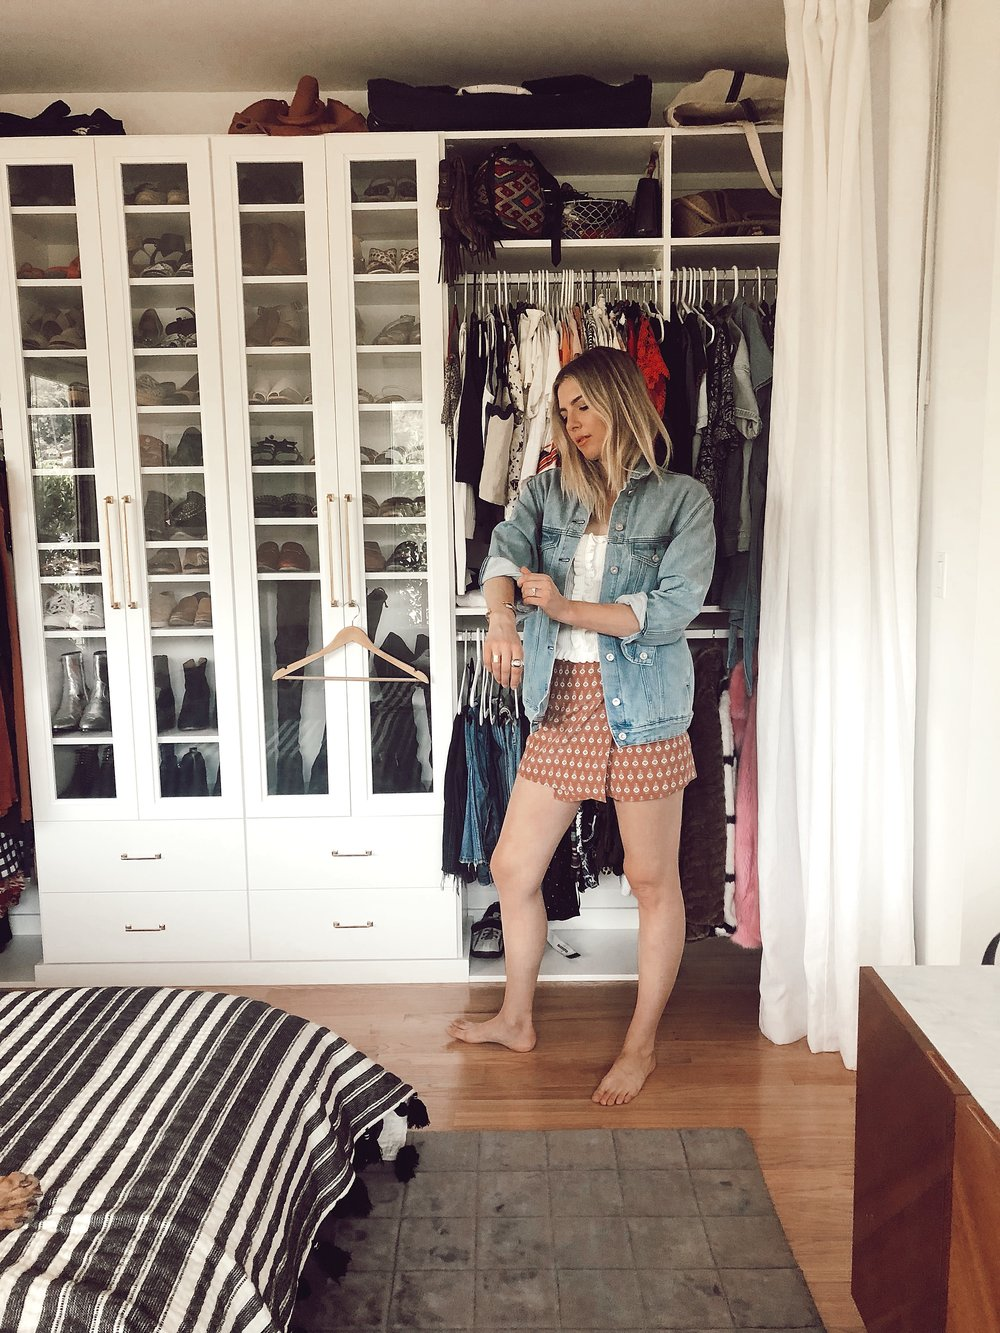 5-tips-on-how-to-organize-and-design-your-dream-closet.jpg